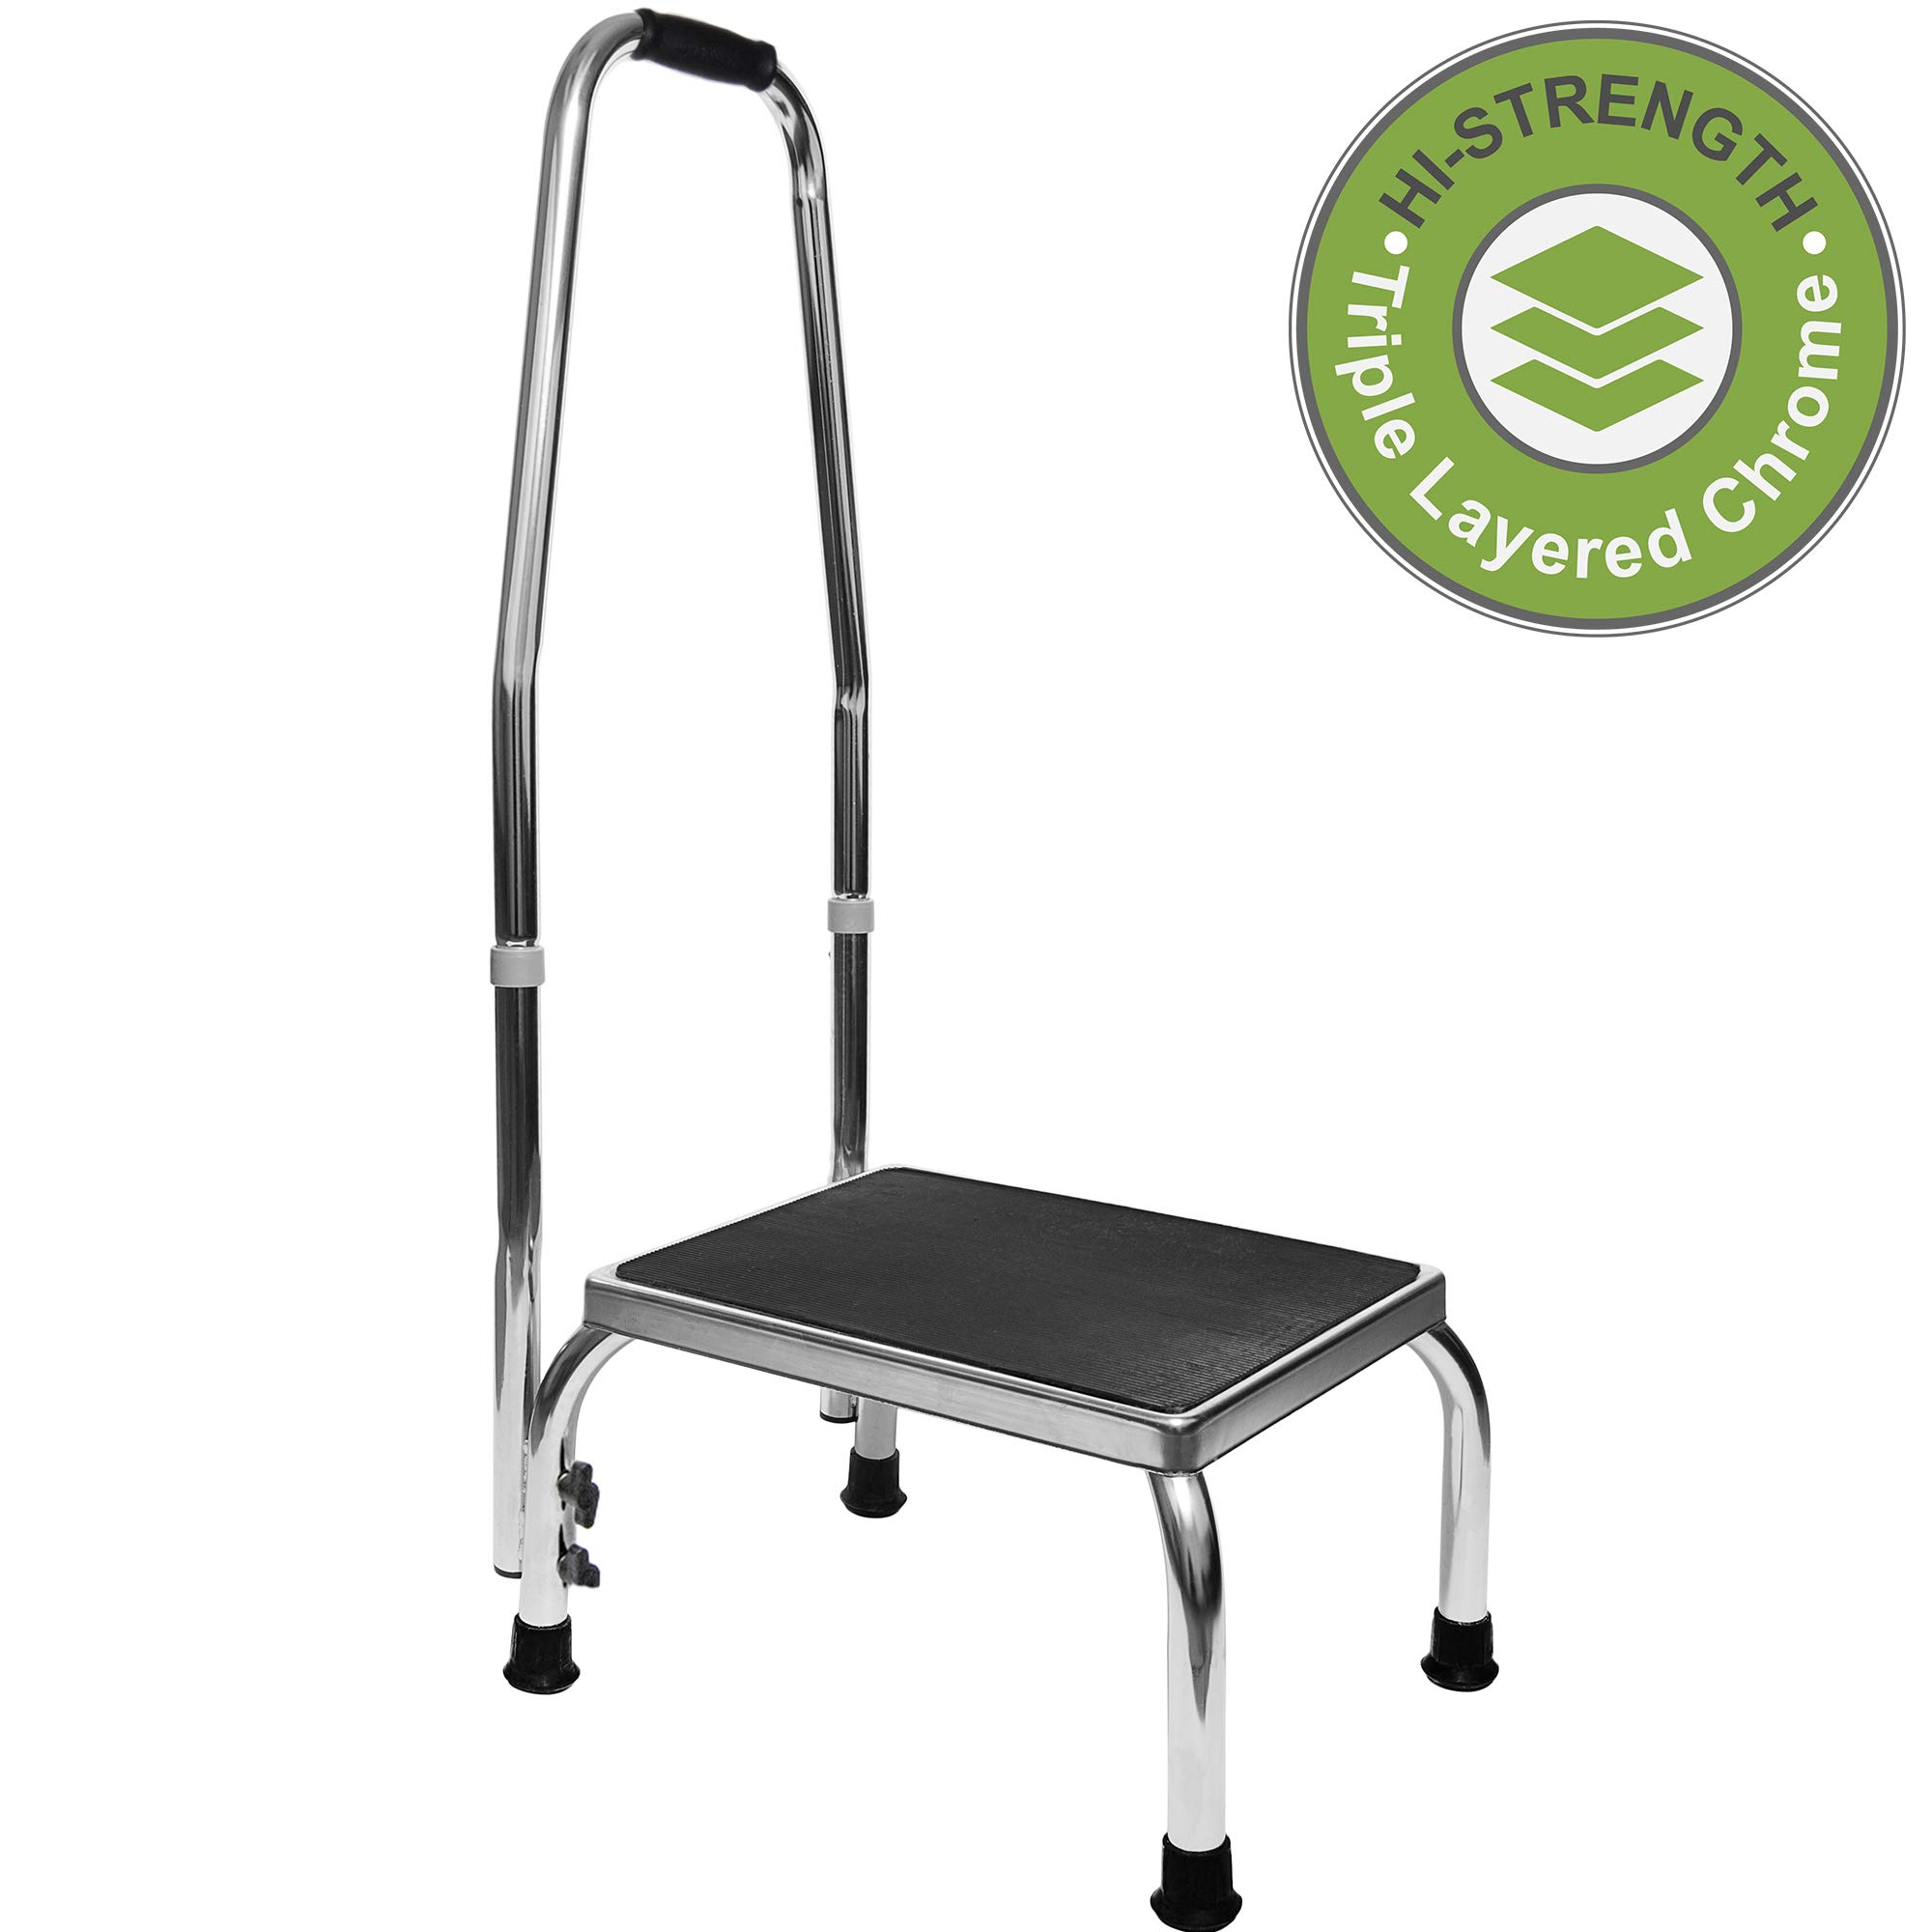 Vaunn Medical Foot Step Stool with Handle and Anti Skid Rubber Platform, Lightweight and Sturdy Chrome Stool for Children, Adults and Seniors by Vaunn